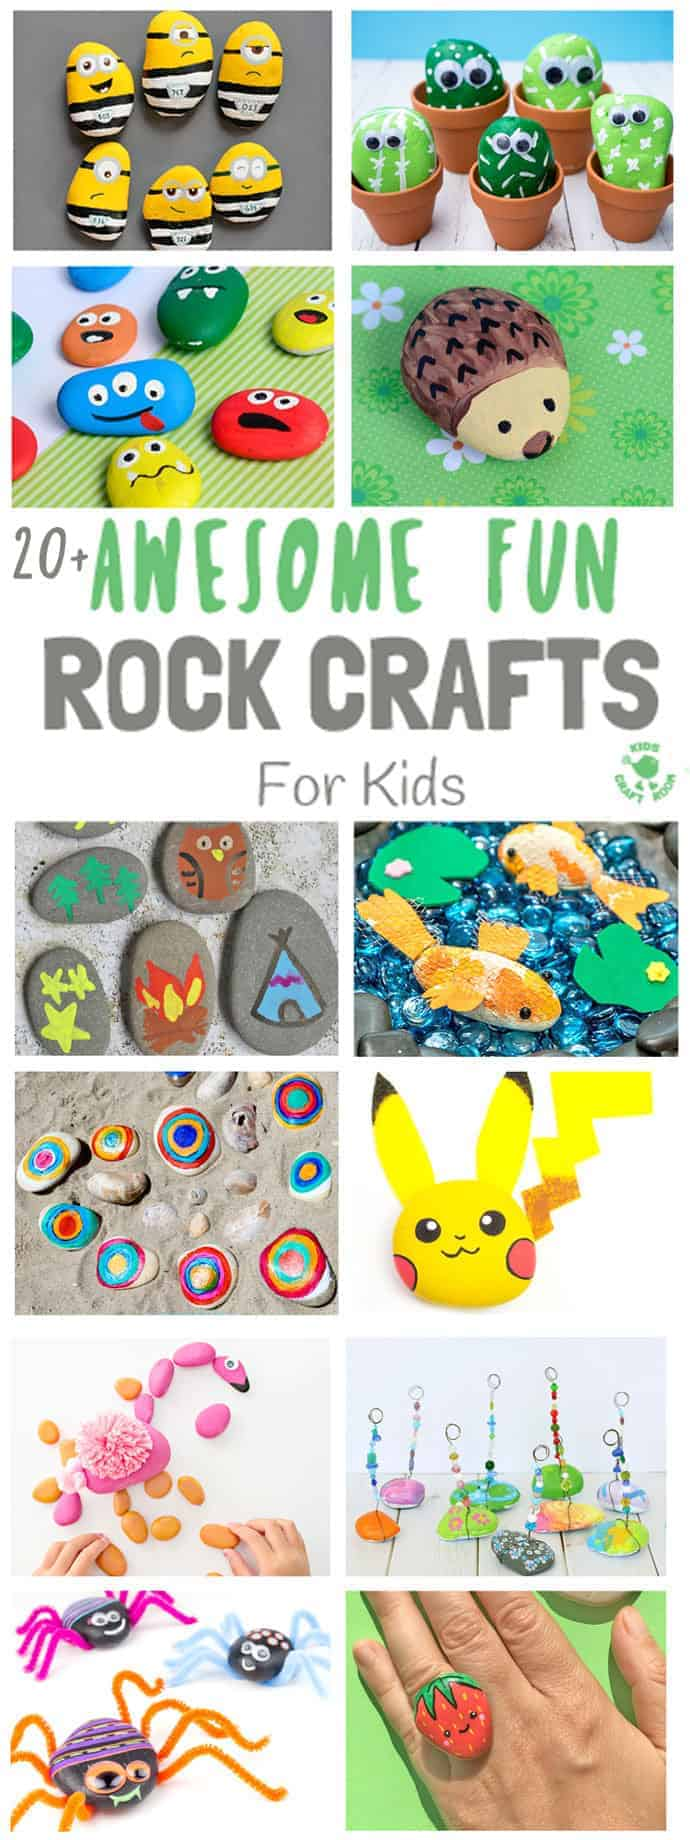 COOL KIDS ROCK CRAFTS - Do your kids love collecting pebbles? If you've got a little Nature collector then you'll love 20+ Awesome Fun Rock Crafts For Kids. These rock painting ideas make fantastic rock activities for fun all year round! #naturecrafts #rockcrafts #paintedrocks #pebblecrafts #rocks #pebbles #stones #kidscrafts #craftsforkids #summercrafts #kidsactivities #summeractivities #beachcrafts #kidscraftroom